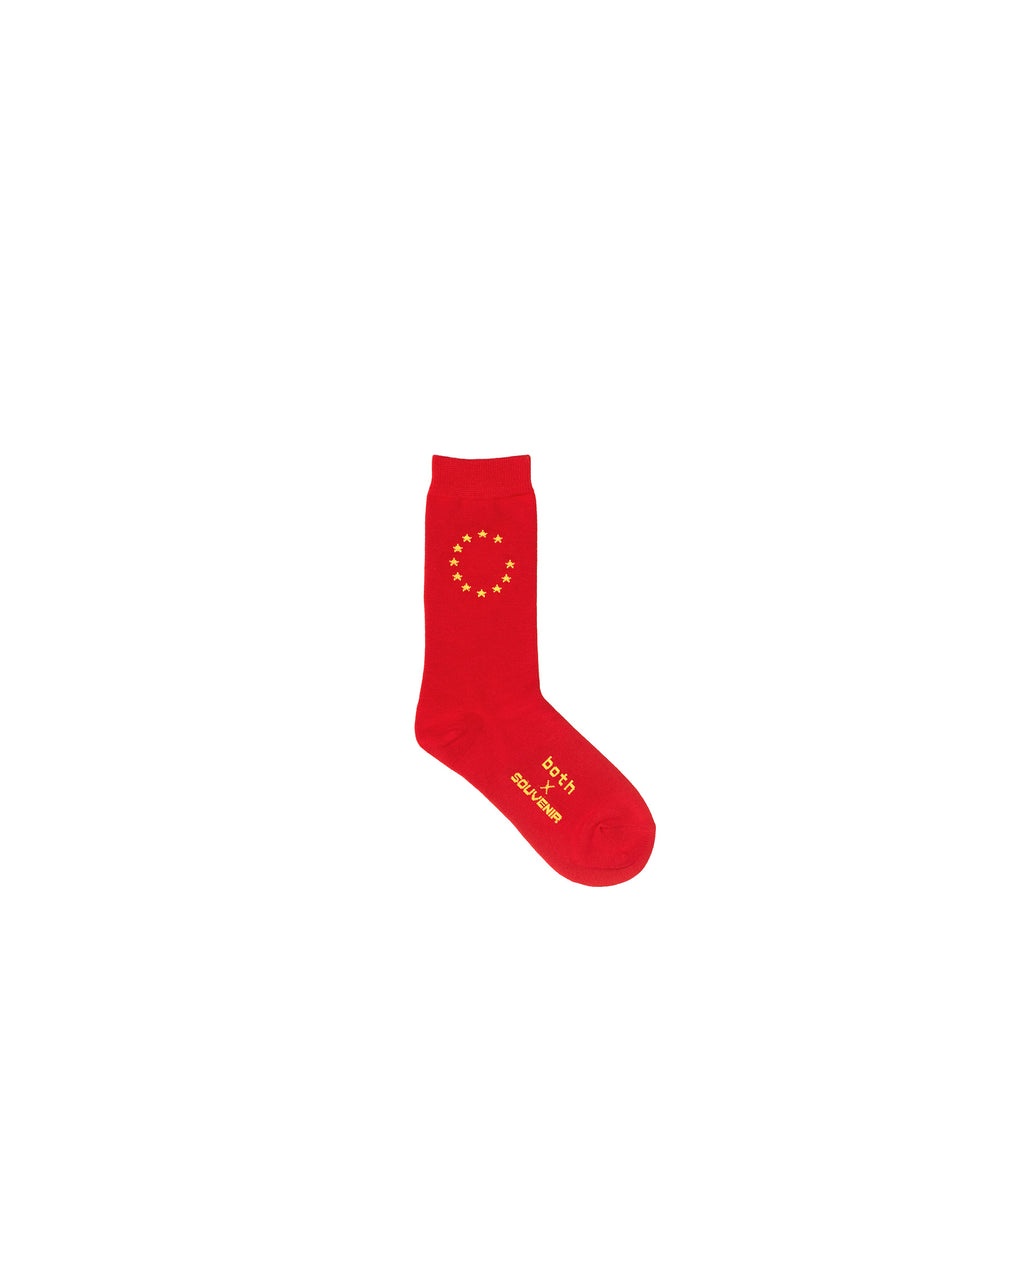 SOUVENIR OFFICIAL x BOTH EUNIFY SOCKS